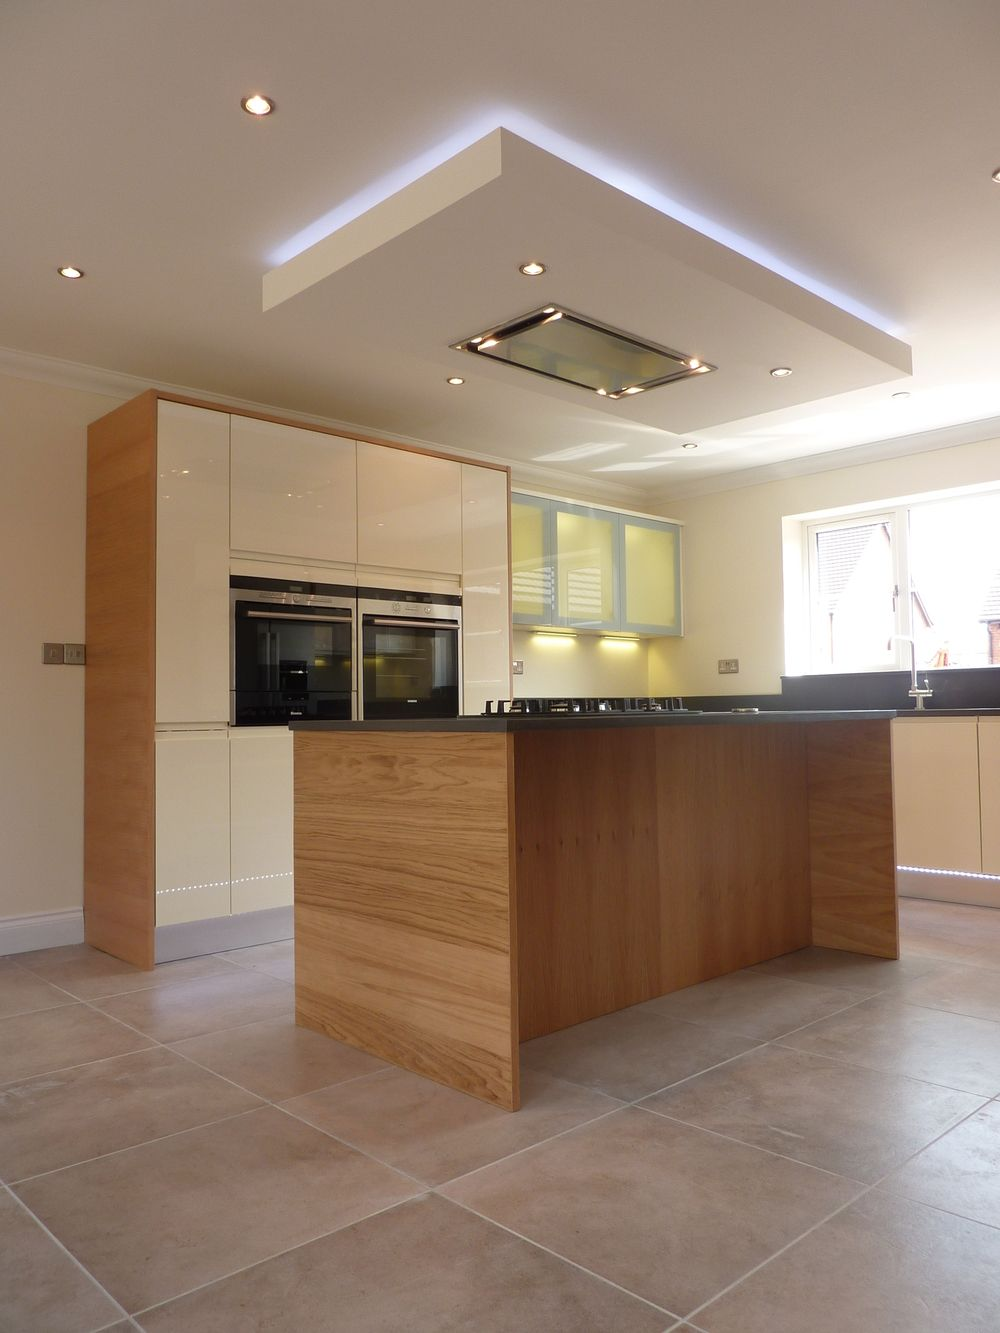 Island Extractor Fans For Low Ceilings - Interior Design ...